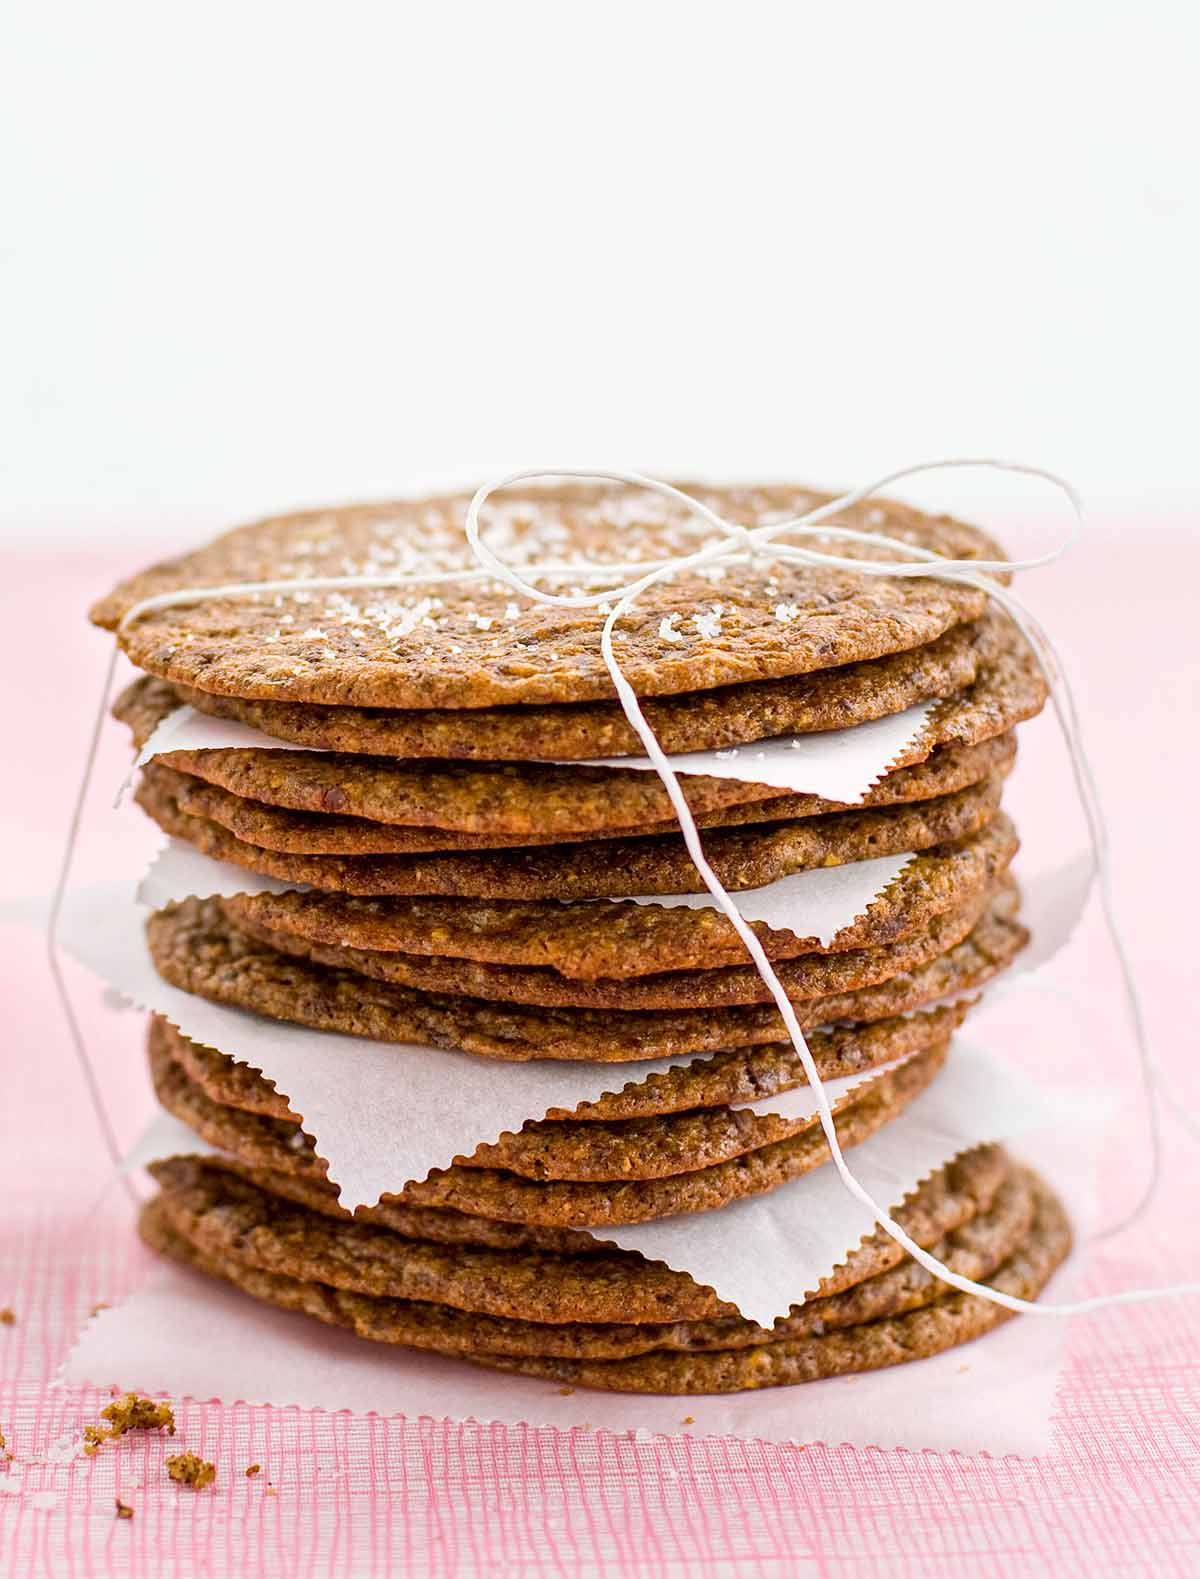 A stack of thin and crisp chocolate chip cookies with pieces of parchment in between, tied up with string and a glass bottle of milk in the background.